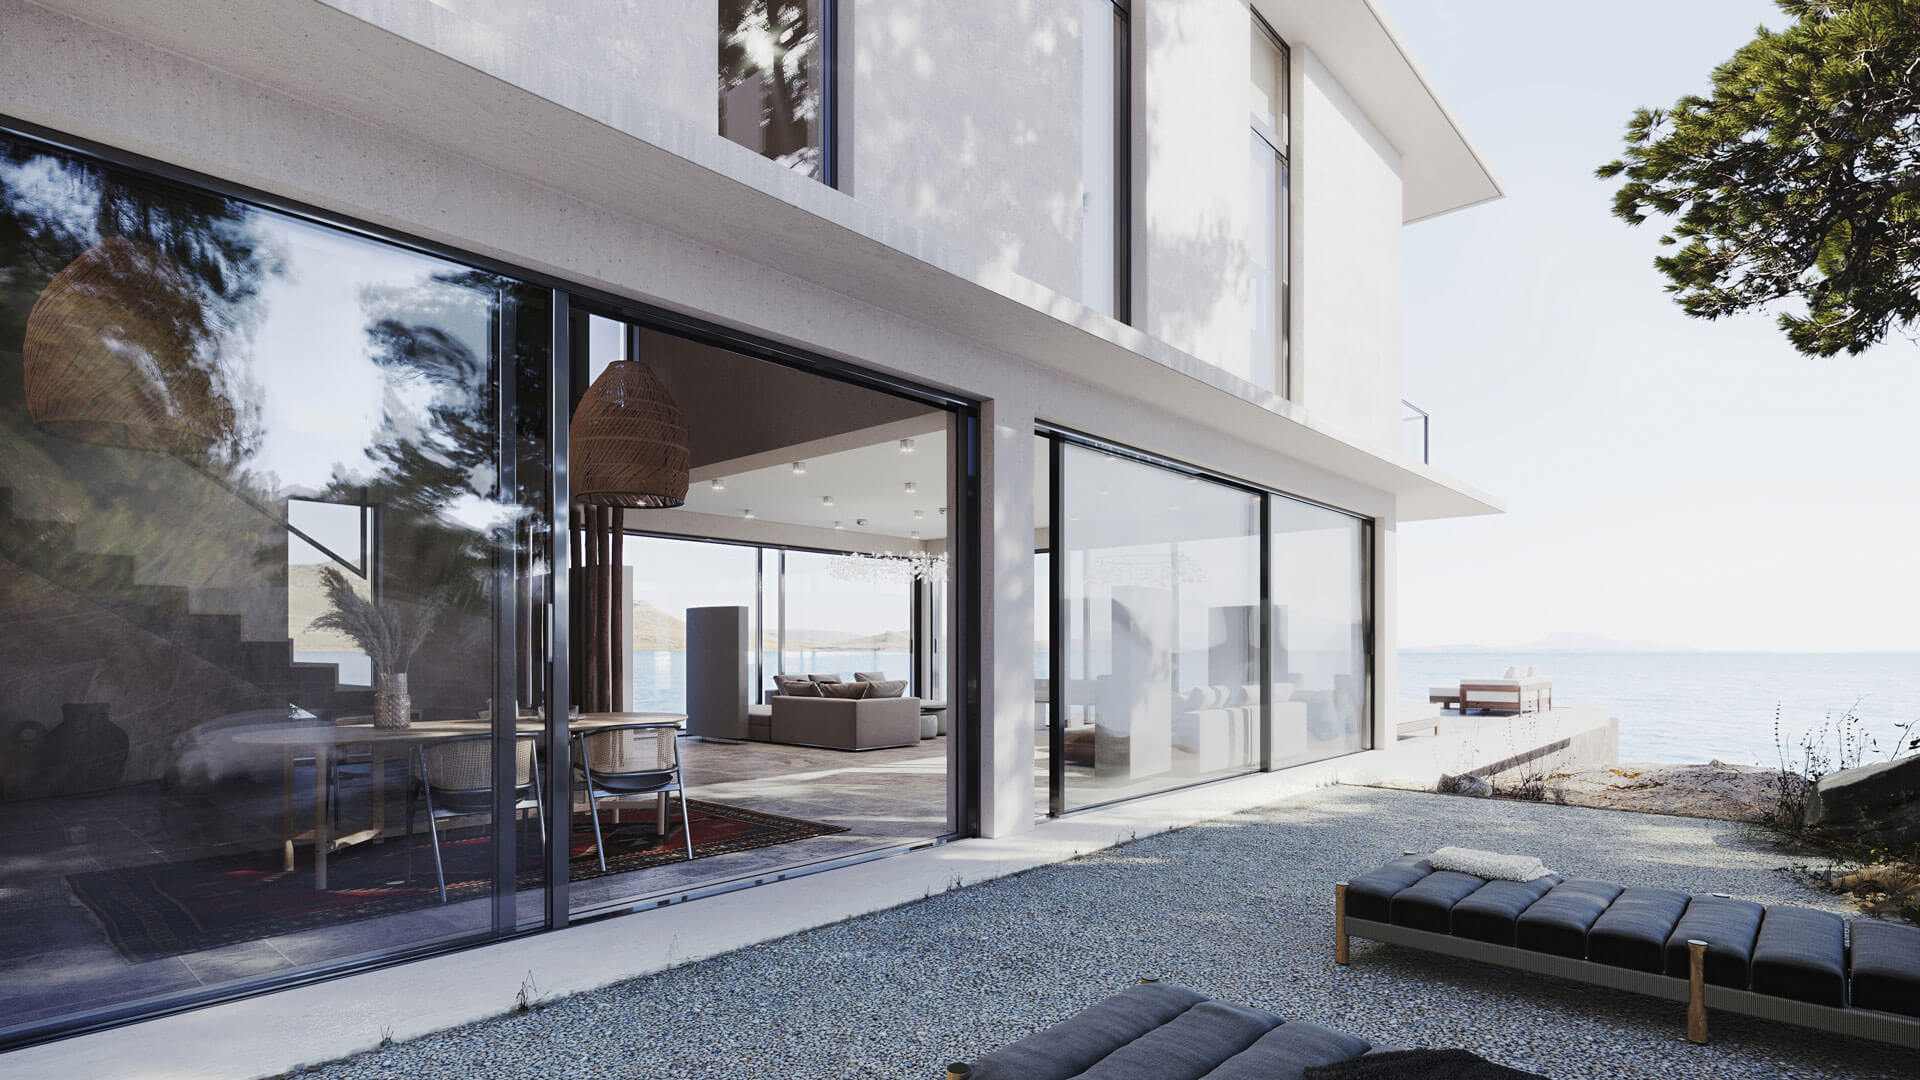 3D Architectural Visualization Of A Seaside Villa